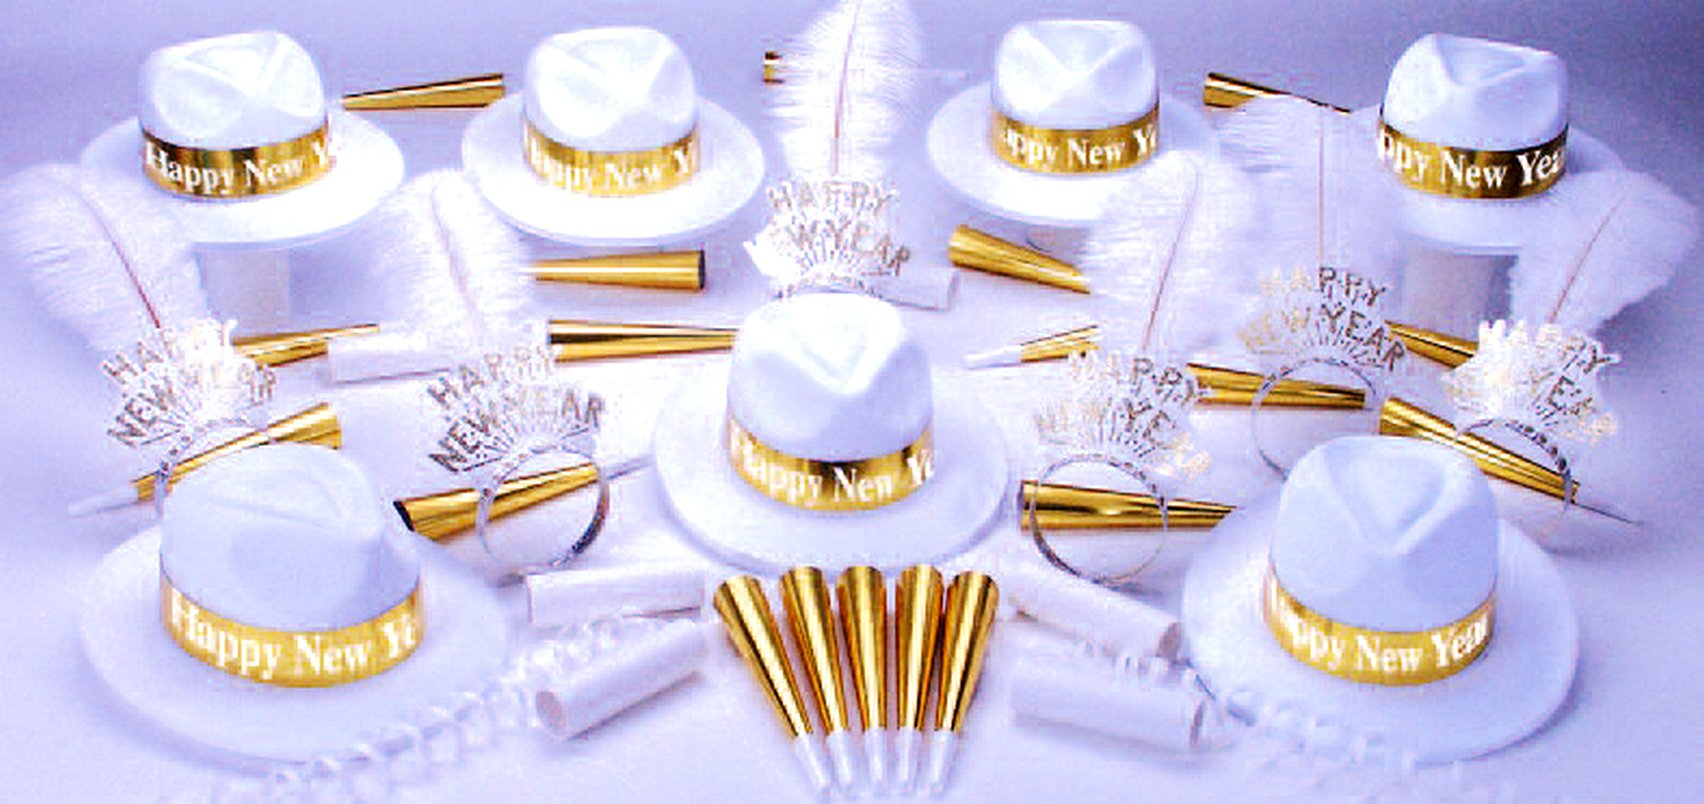 Gold Paradise Bay Party Kit w/Happy New Year for 50